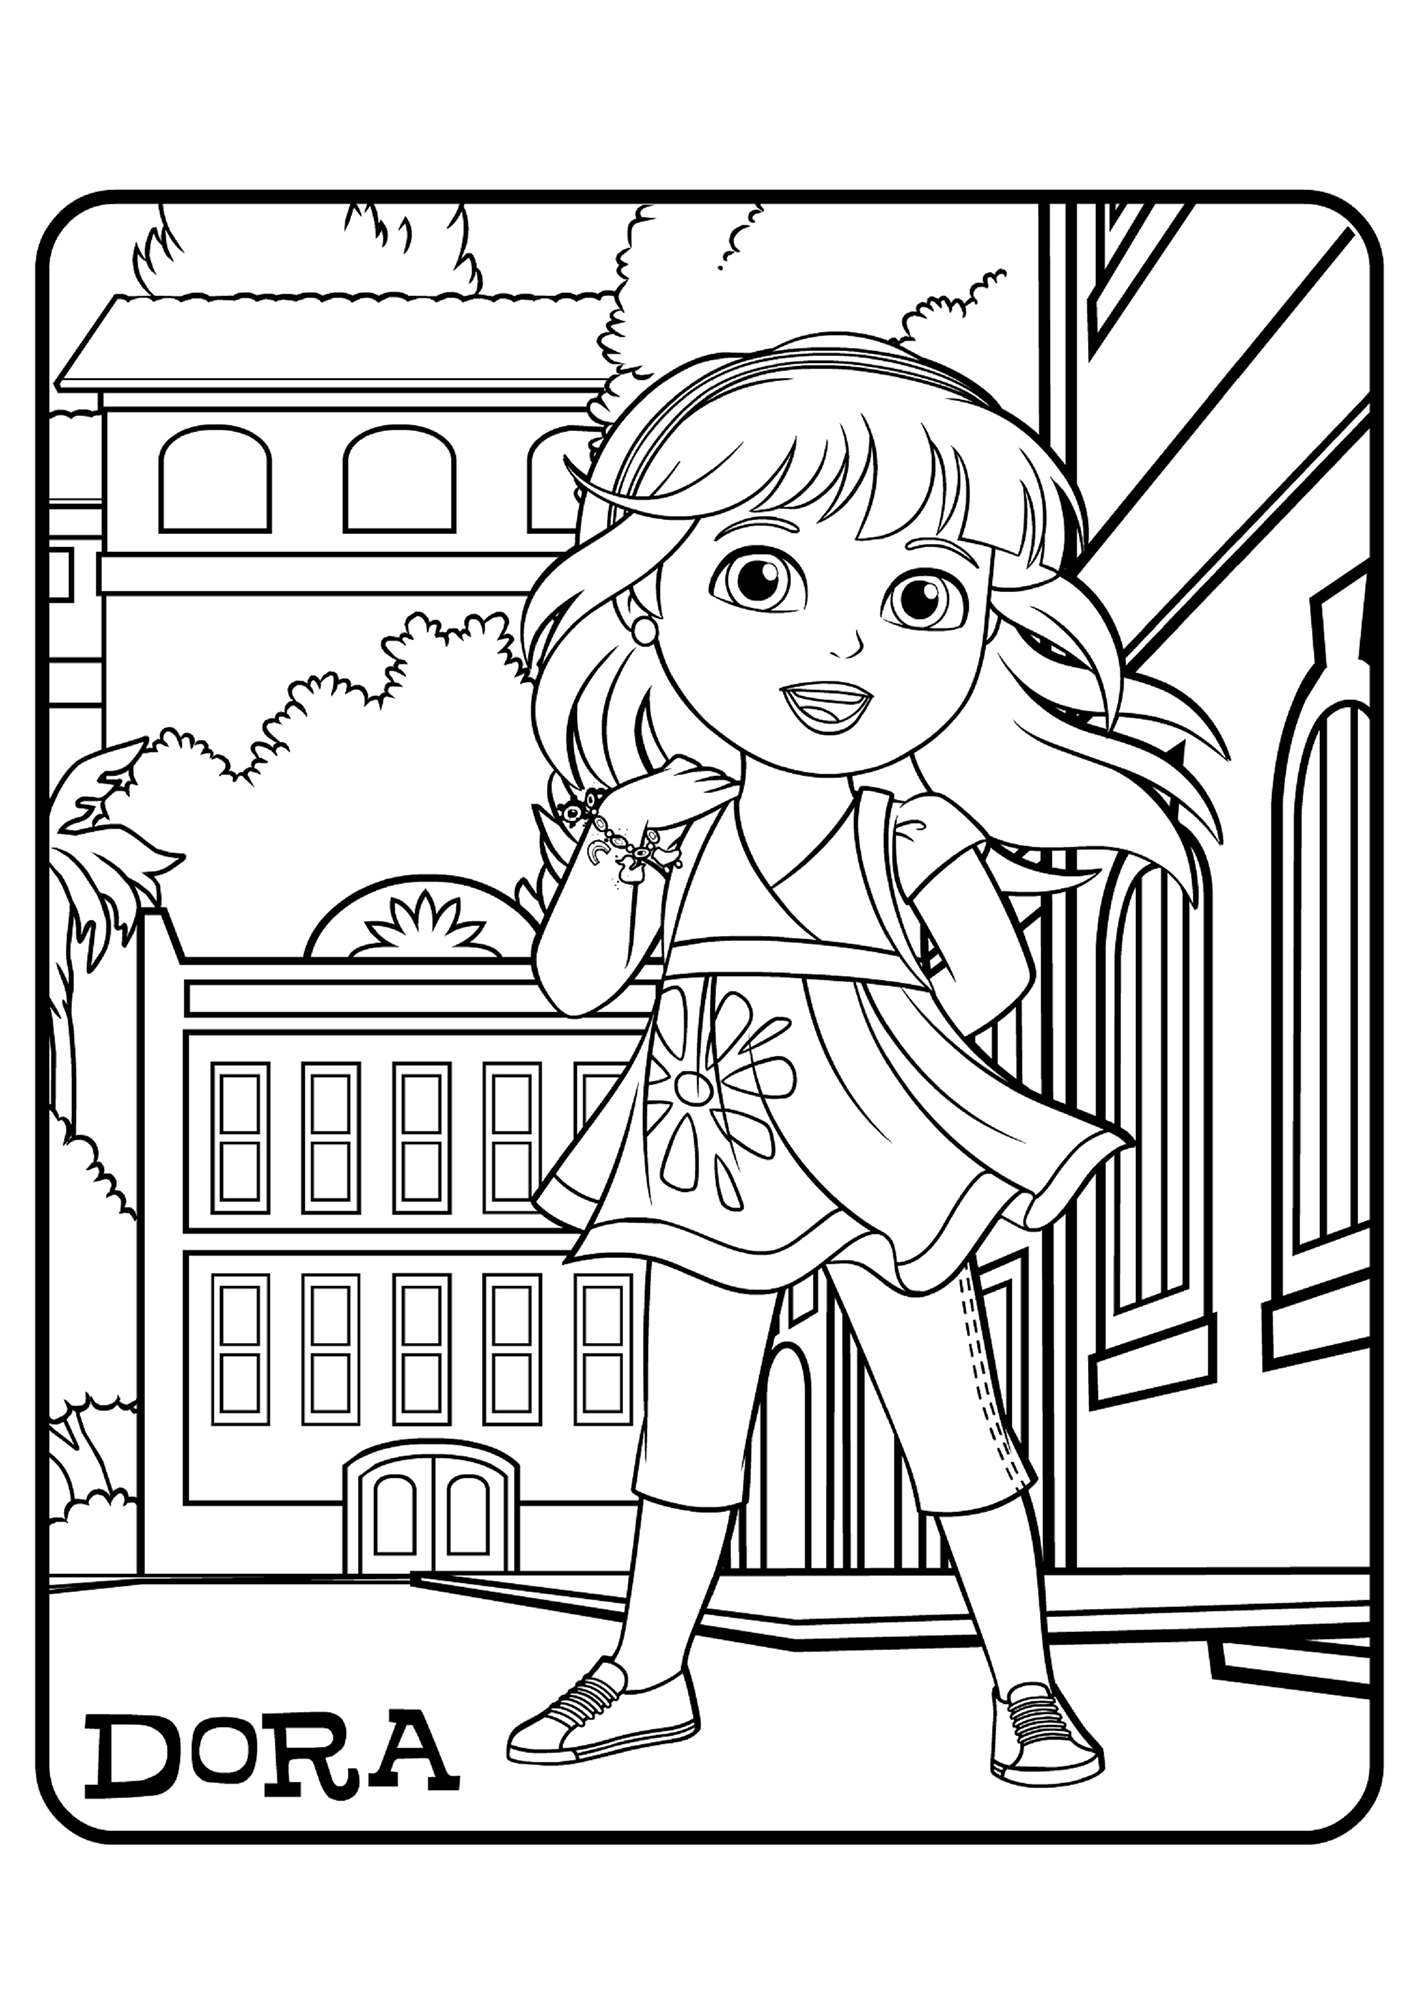 coloring pages dora and friends nice get a move on dora and friends soccer dance coloring and coloring pages dora friends